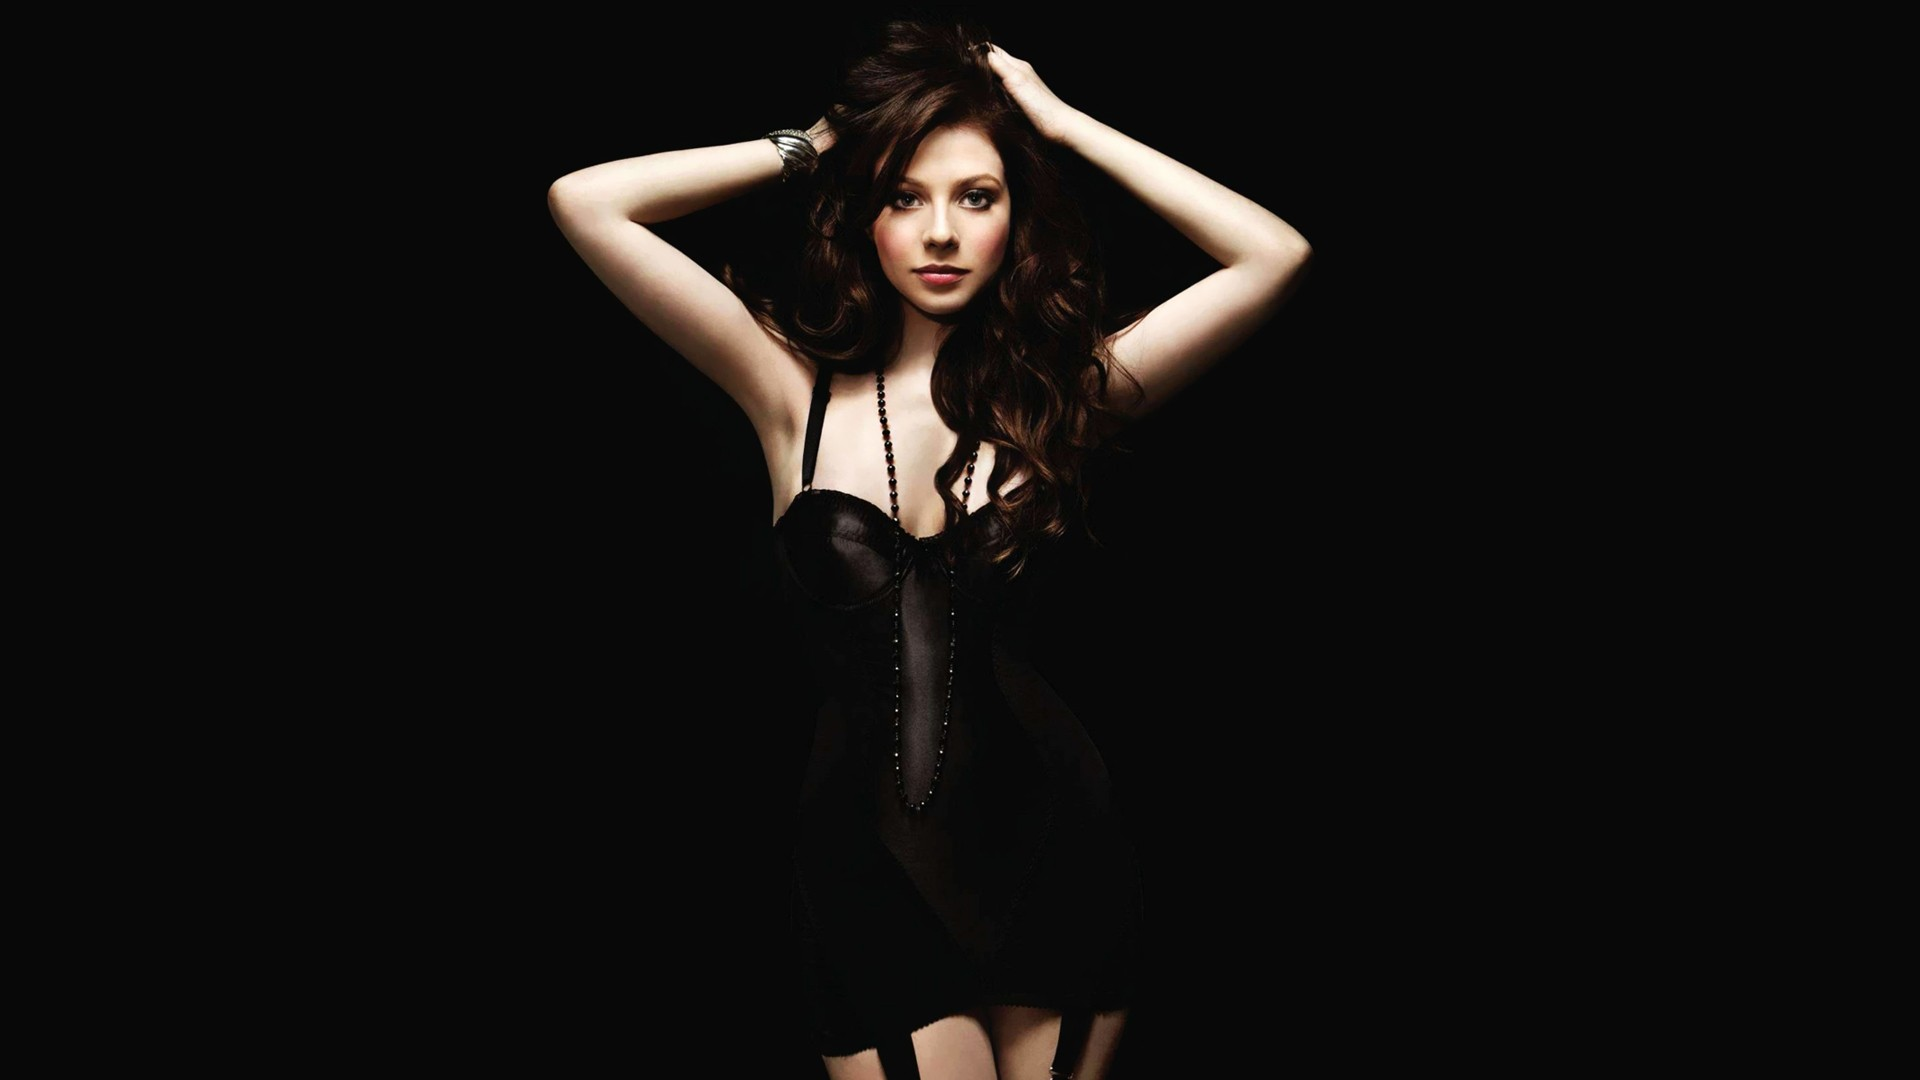 Girls In Lingerie Pc Wallpapeer 137 Michelle Trachtenberg Hd Wallpapers Background